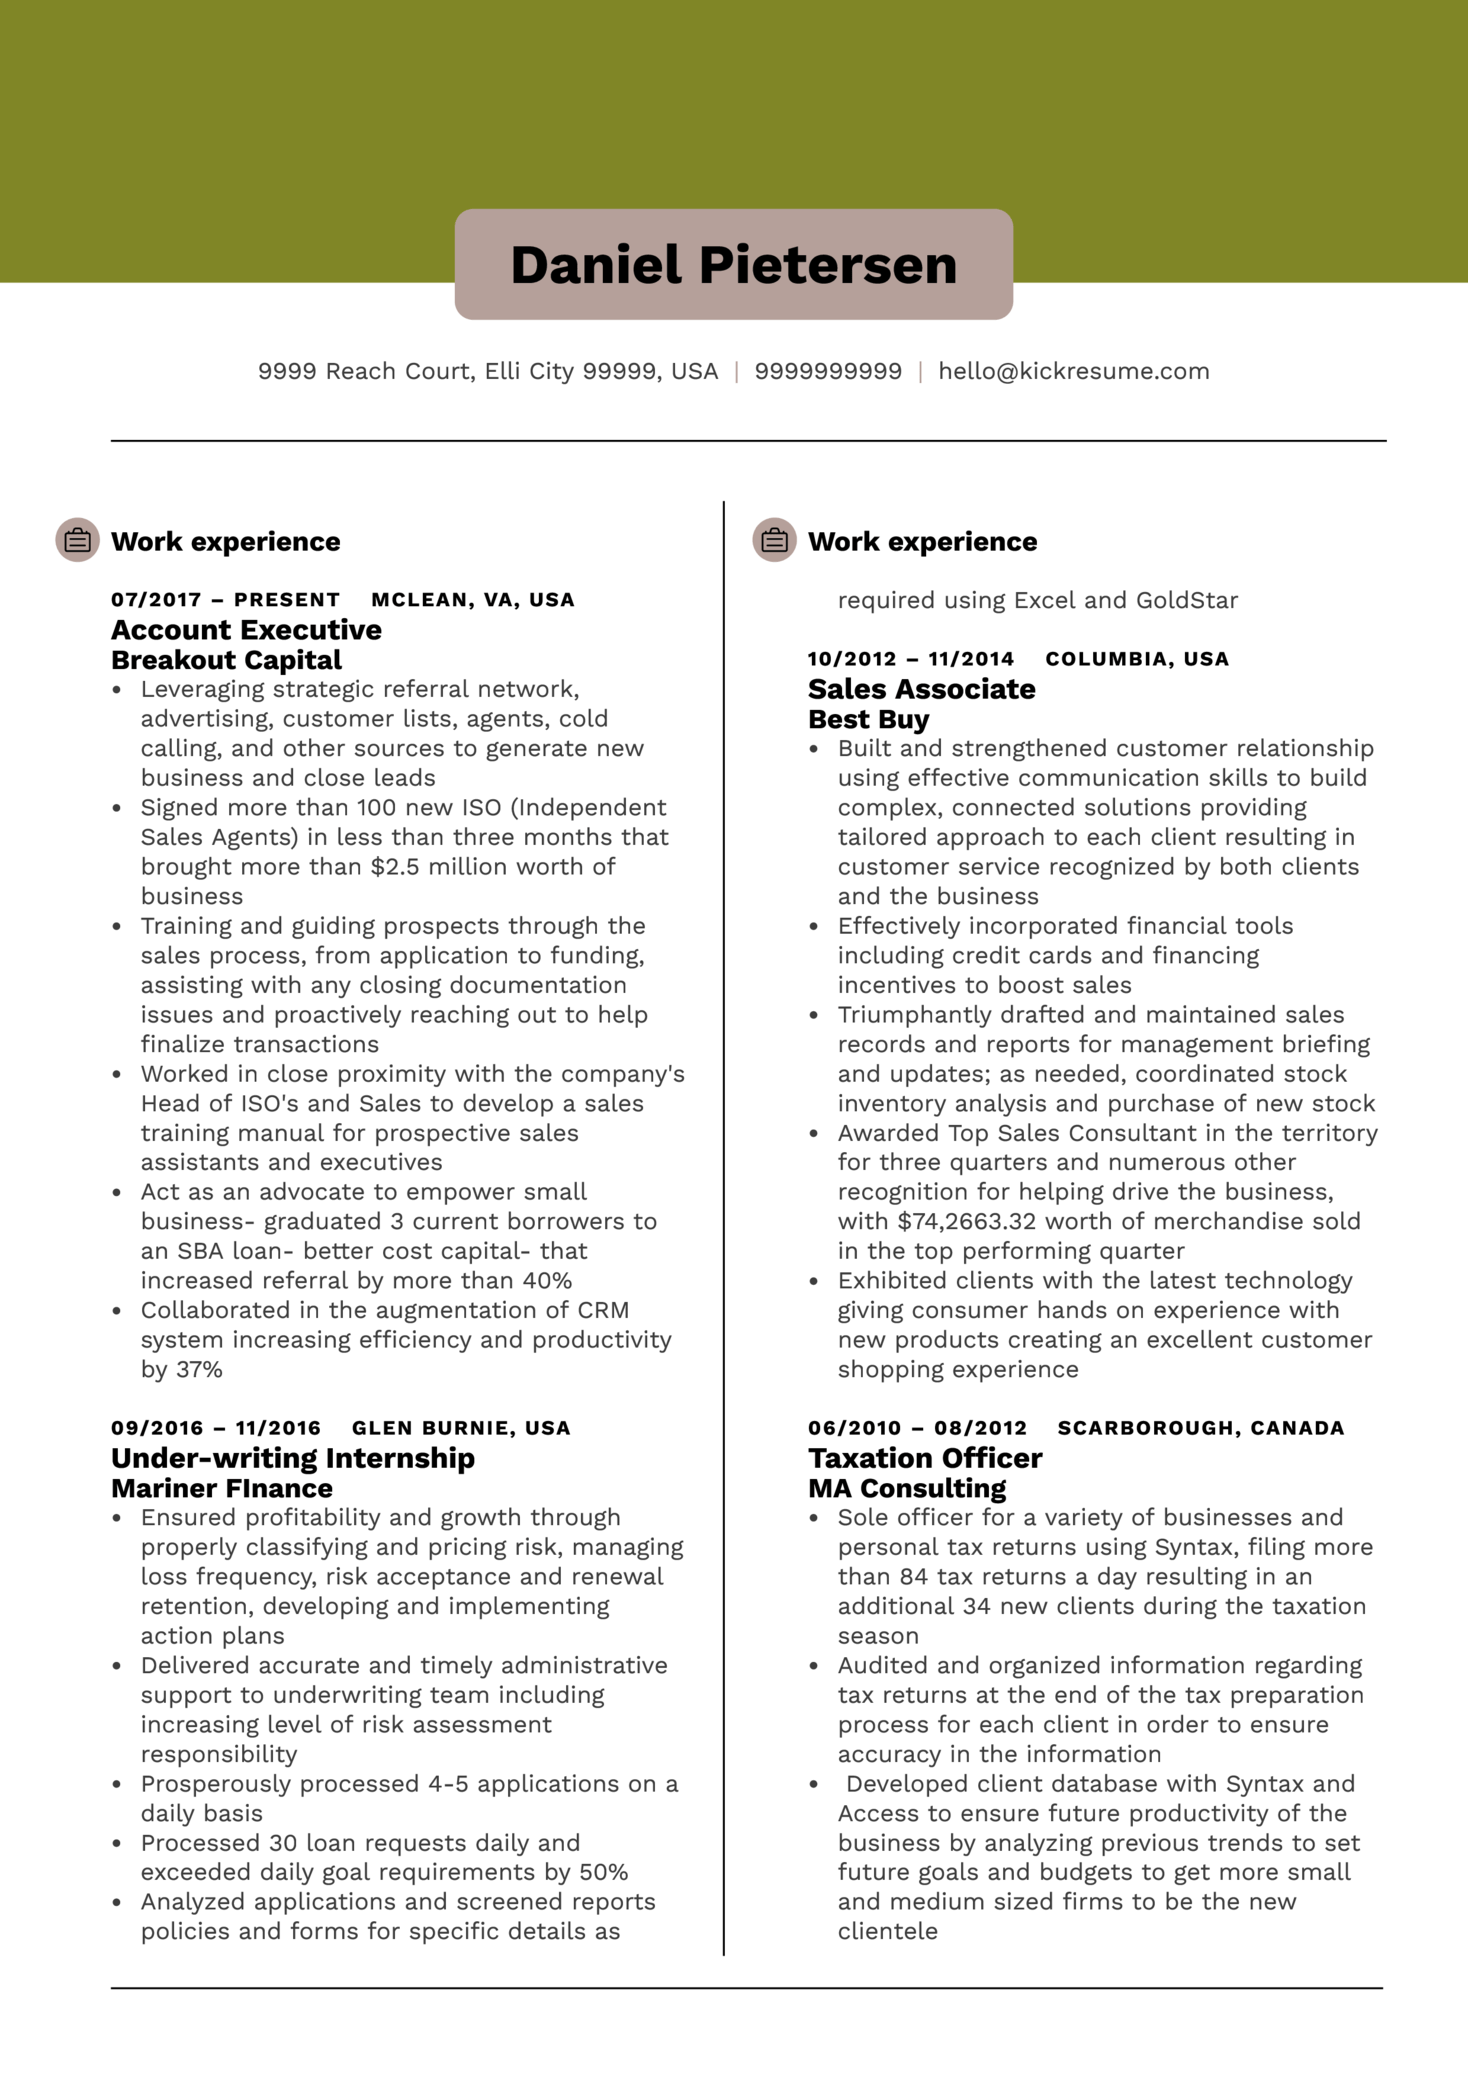 Resume Examples by Real People Account executive resume sample  Kickresume